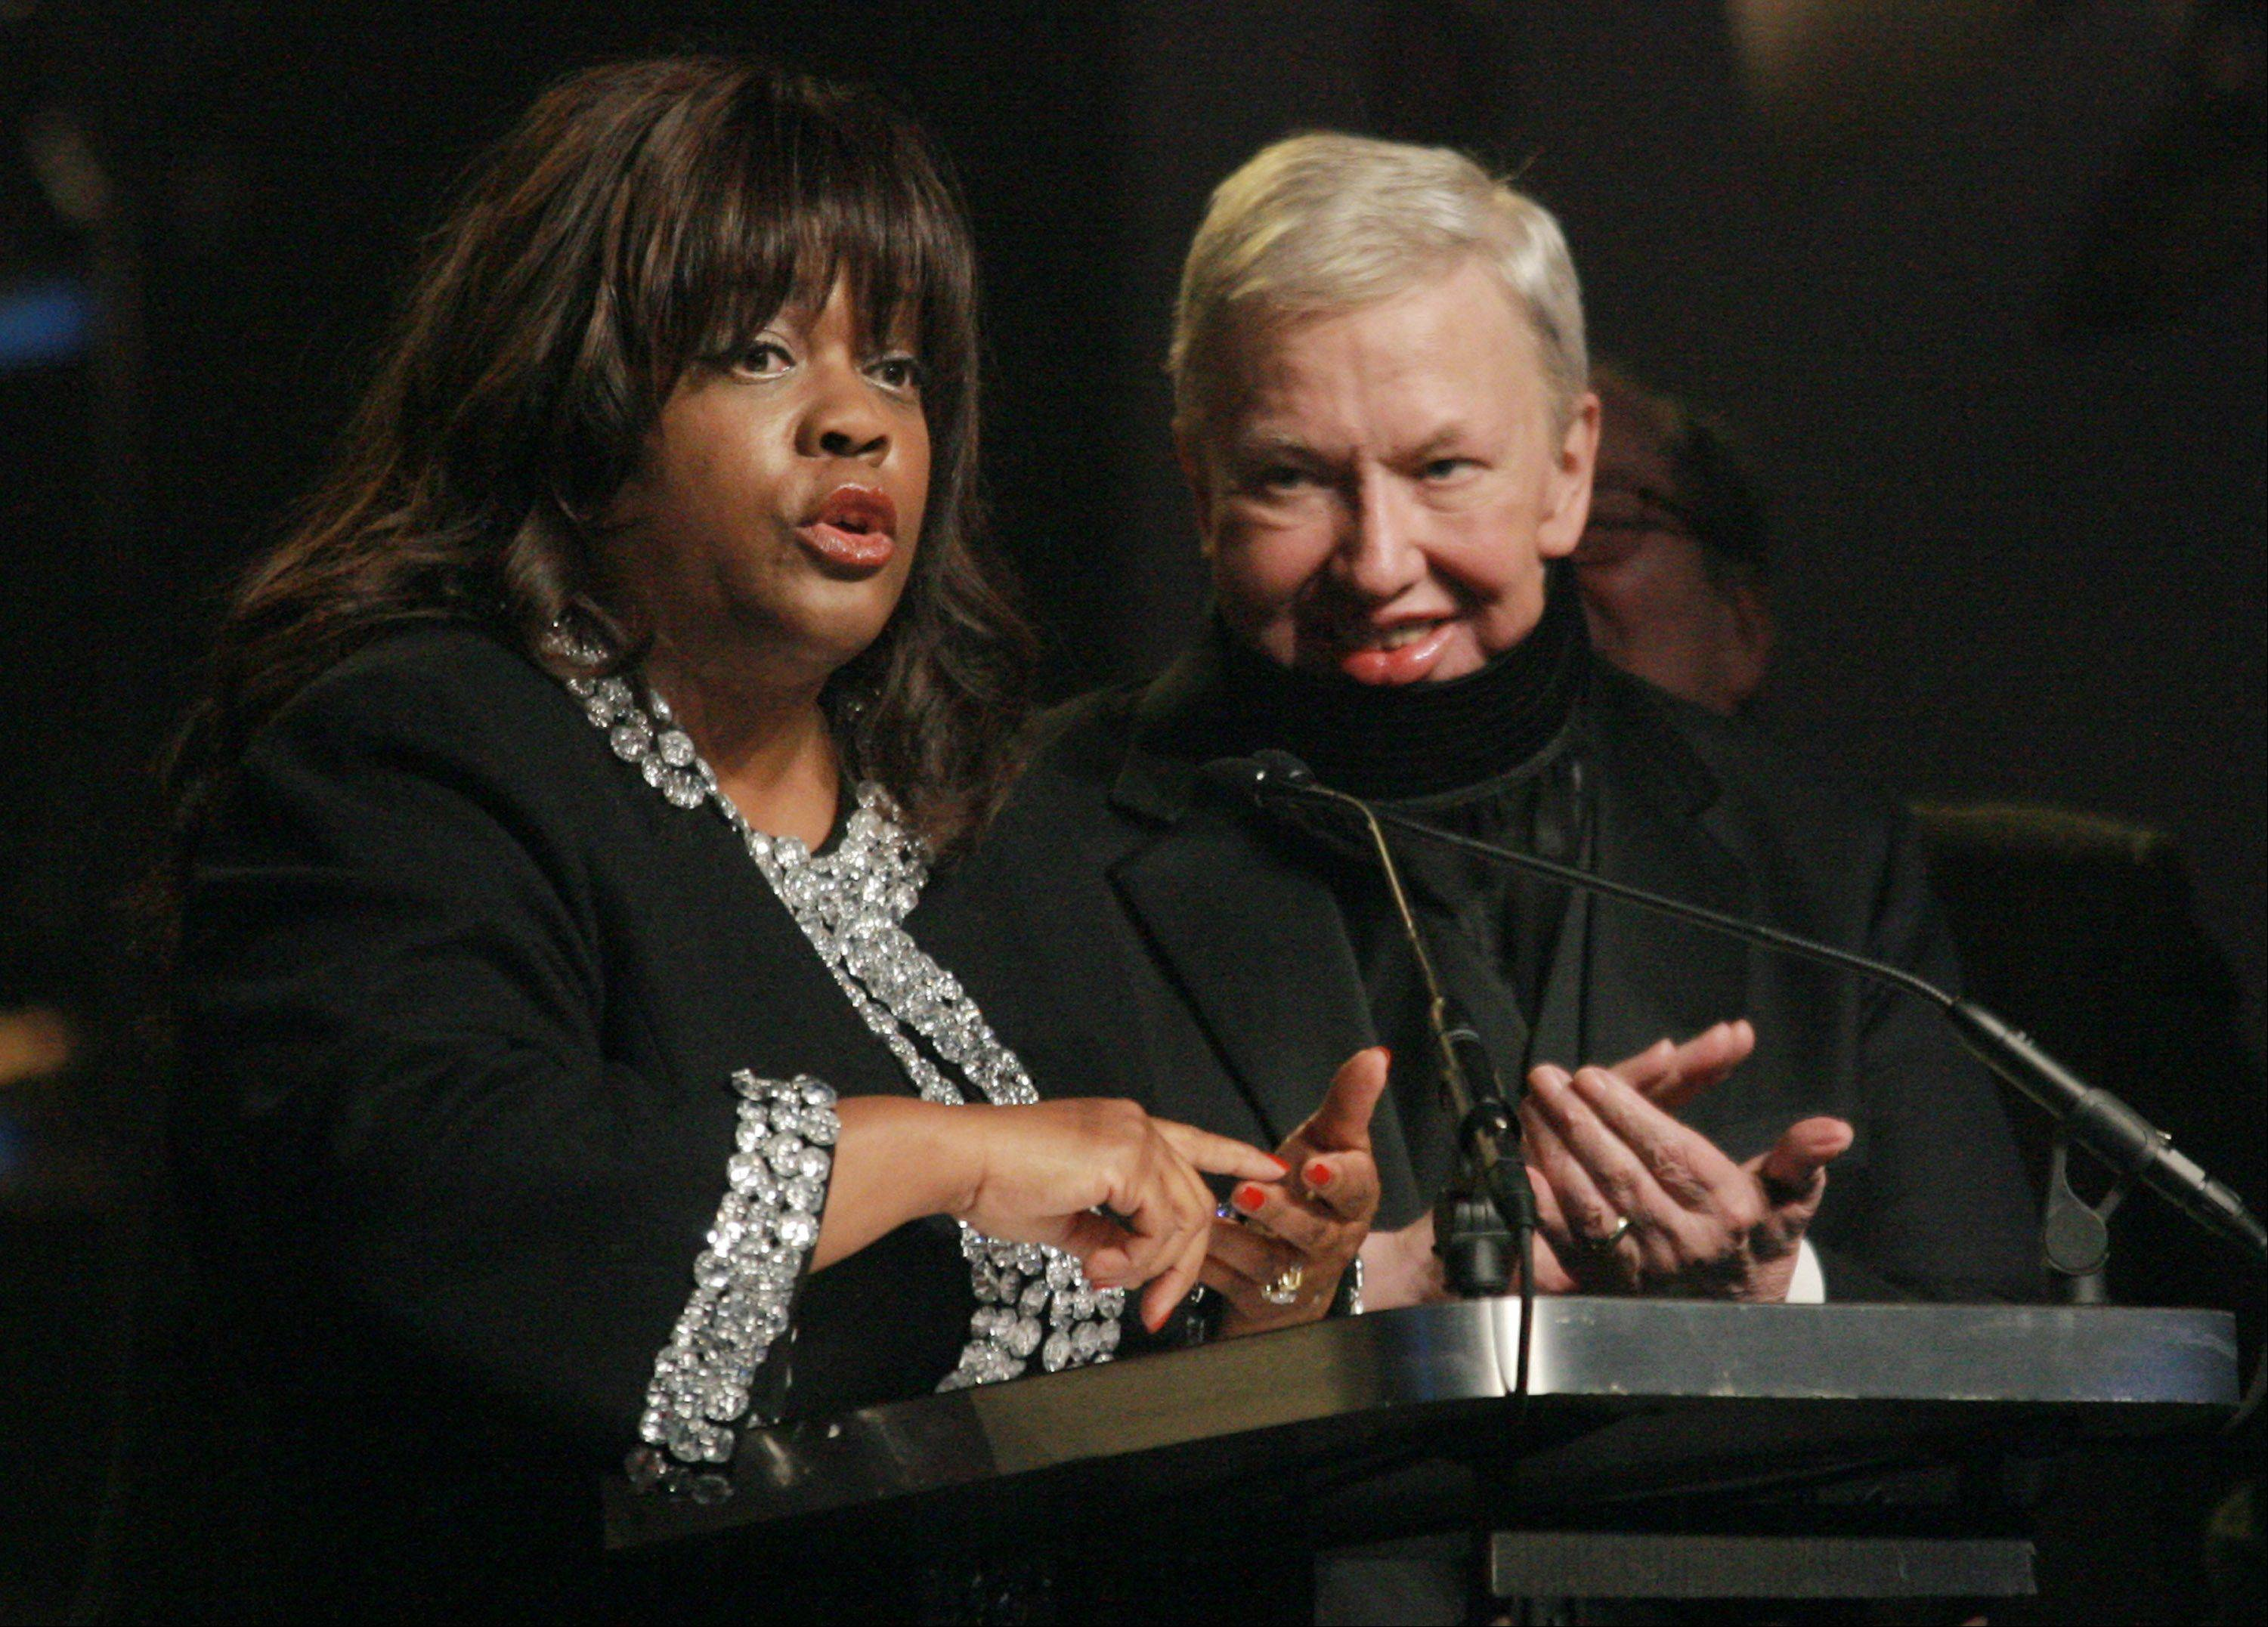 Chaz Hammelsmith Ebert speaks for her husband film critic Roger Ebert who was honored at the 17th Annual Gotham Awards at Steiner Studios, Tuesday, Nov. 27, 2007 in New York.